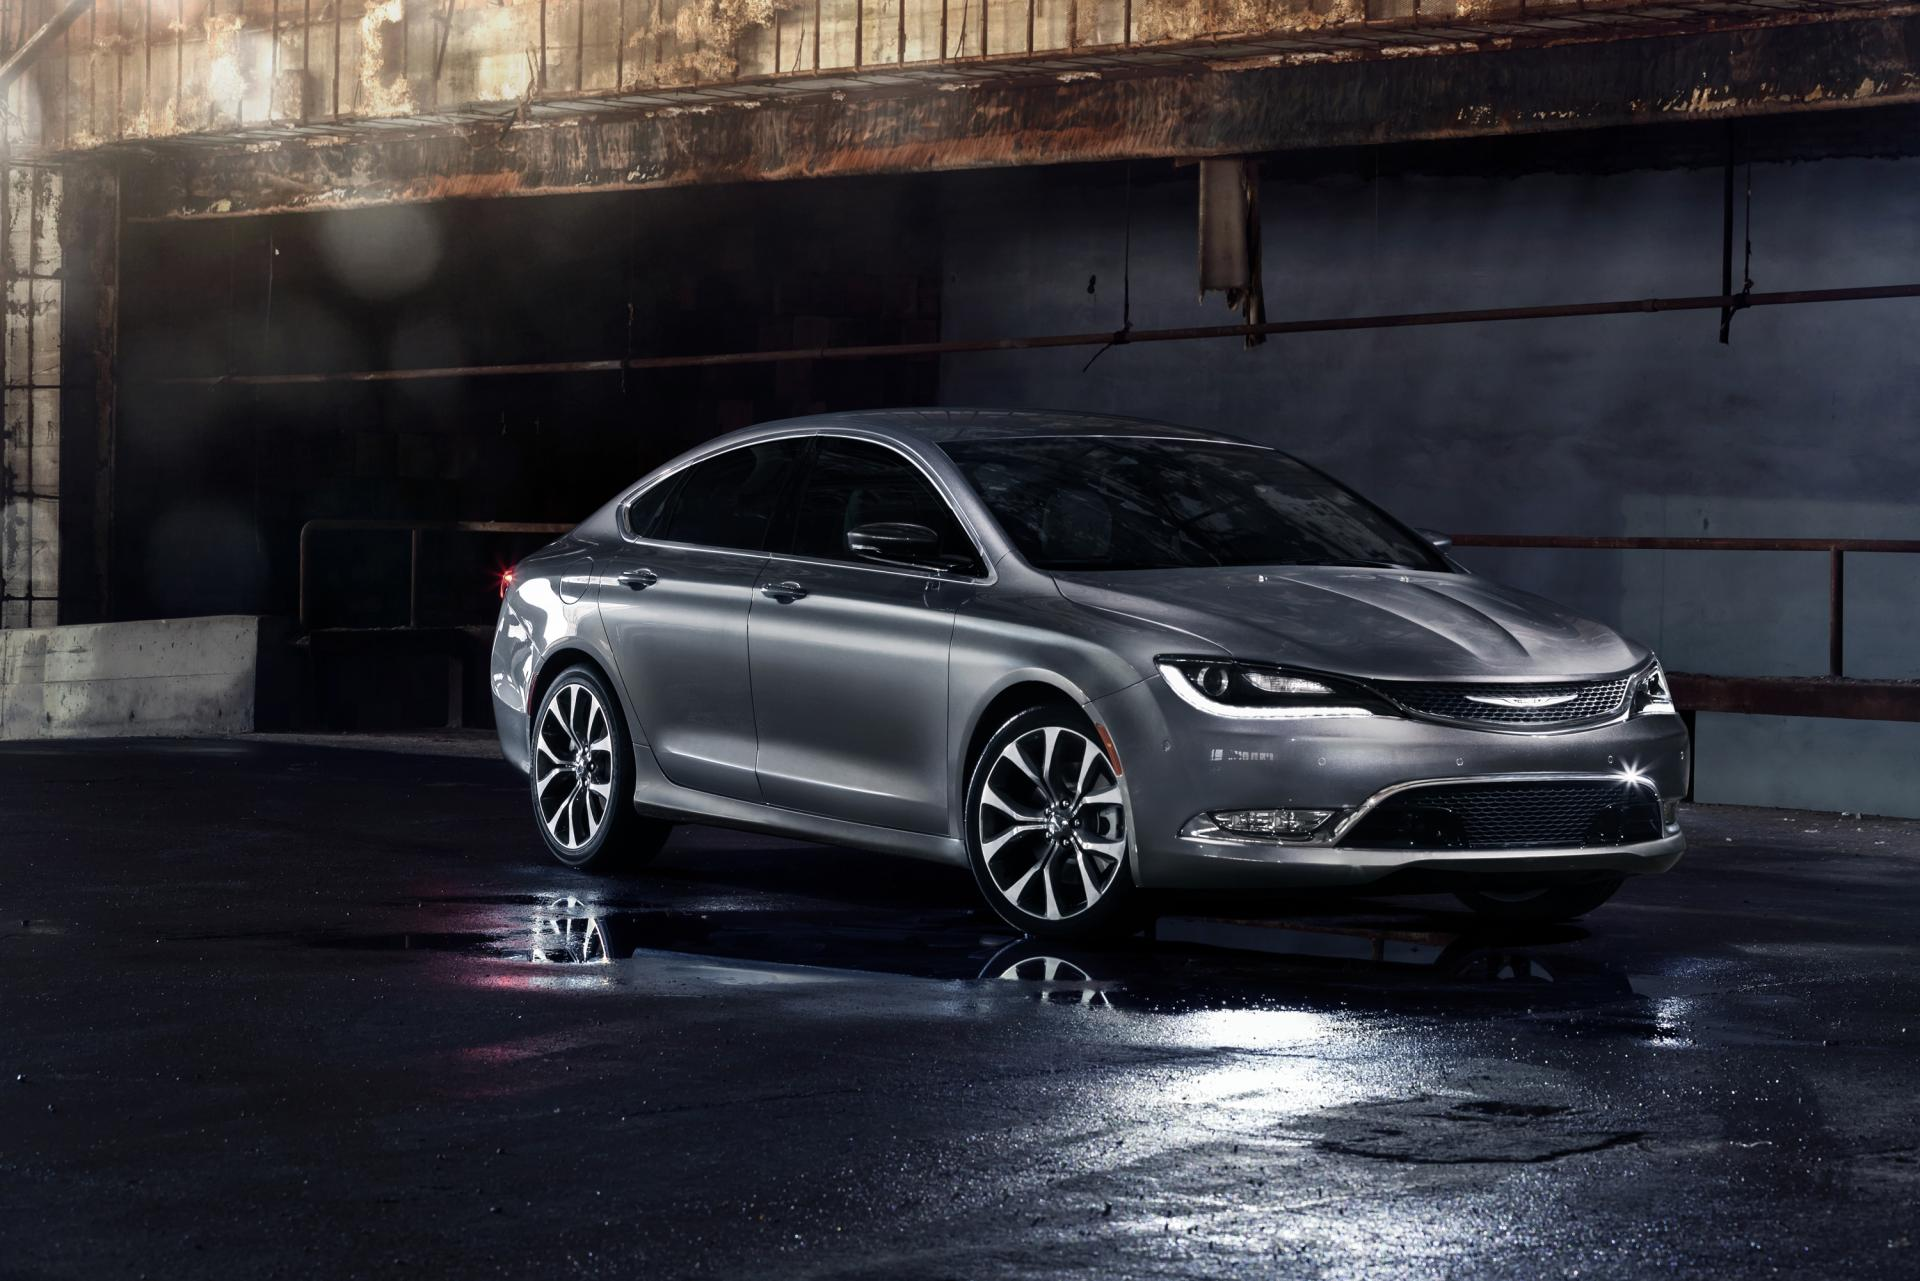 1920x1281 - Chrysler 200 Wallpapers 10